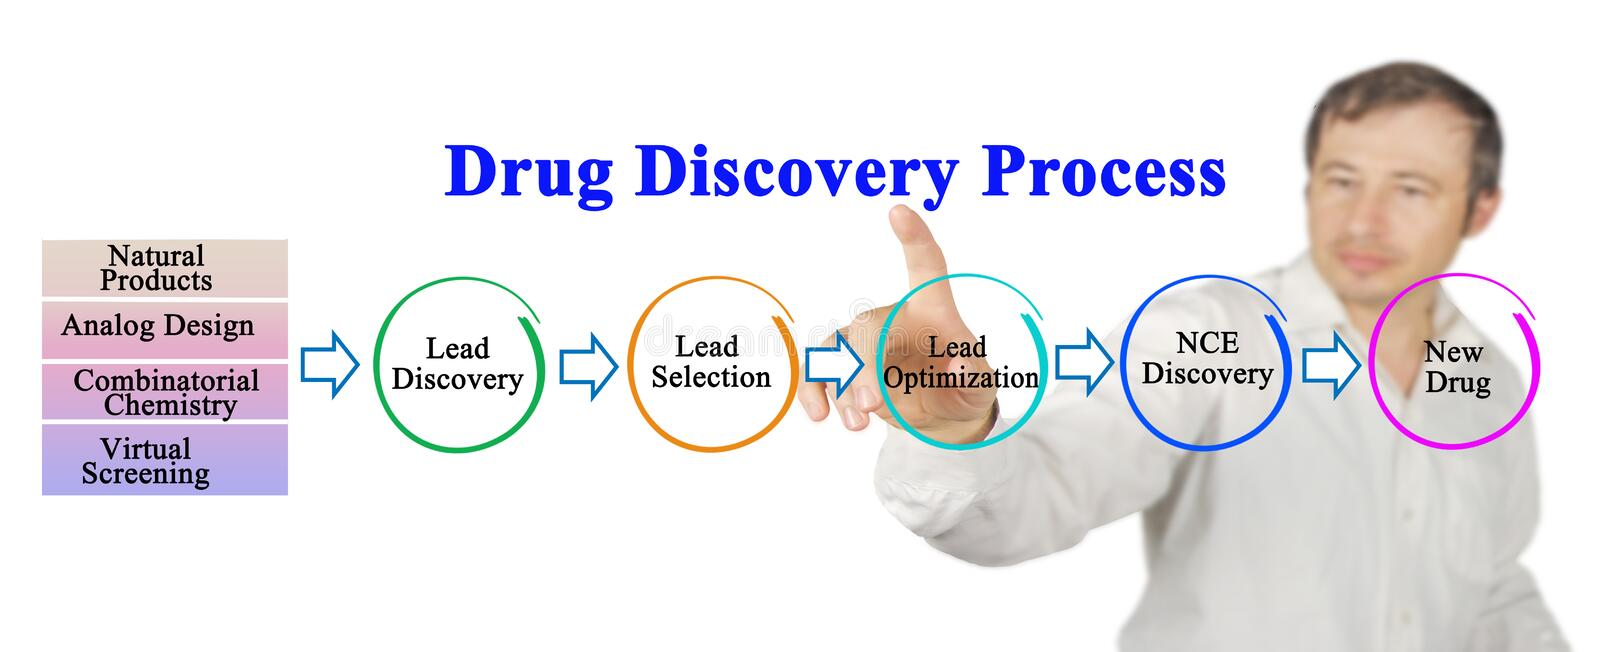 Drug Discovery Process royalty free stock photo